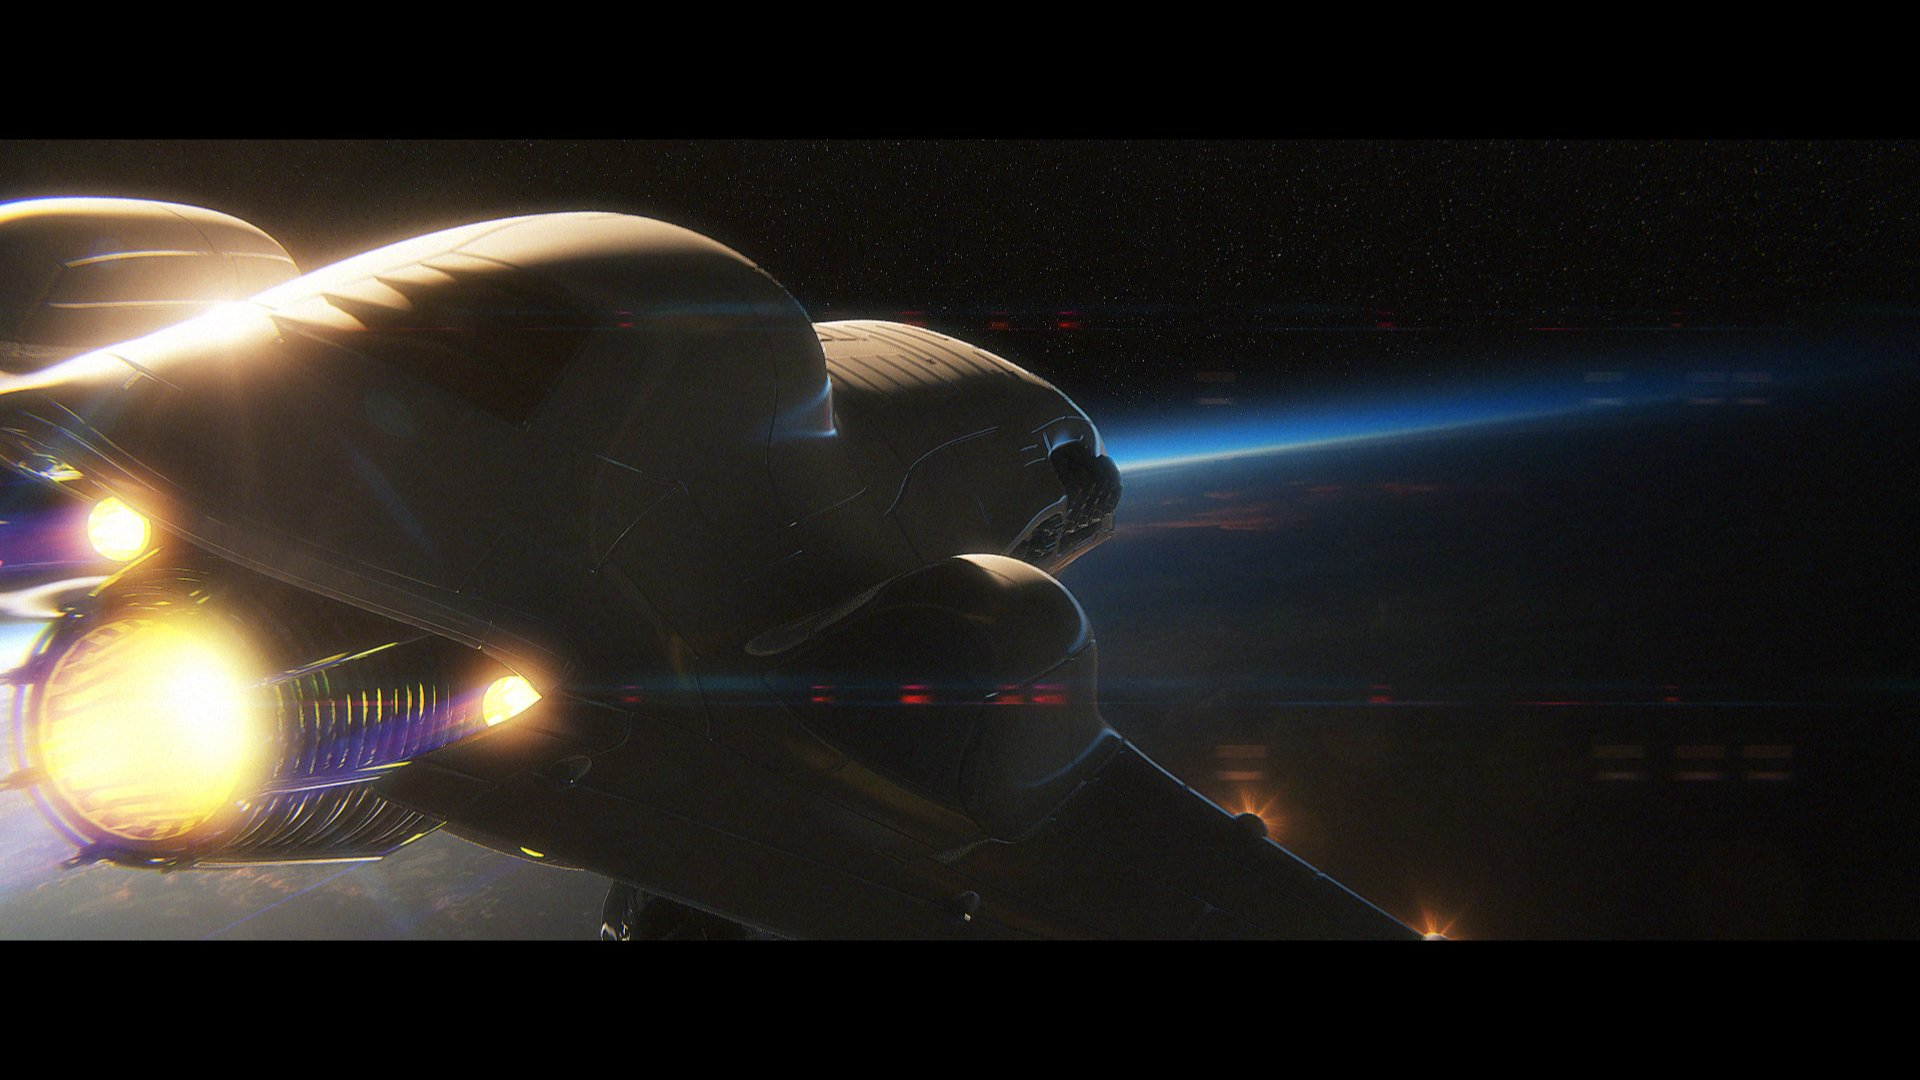 Having Fun with my concept model for the SyFy show Eueka